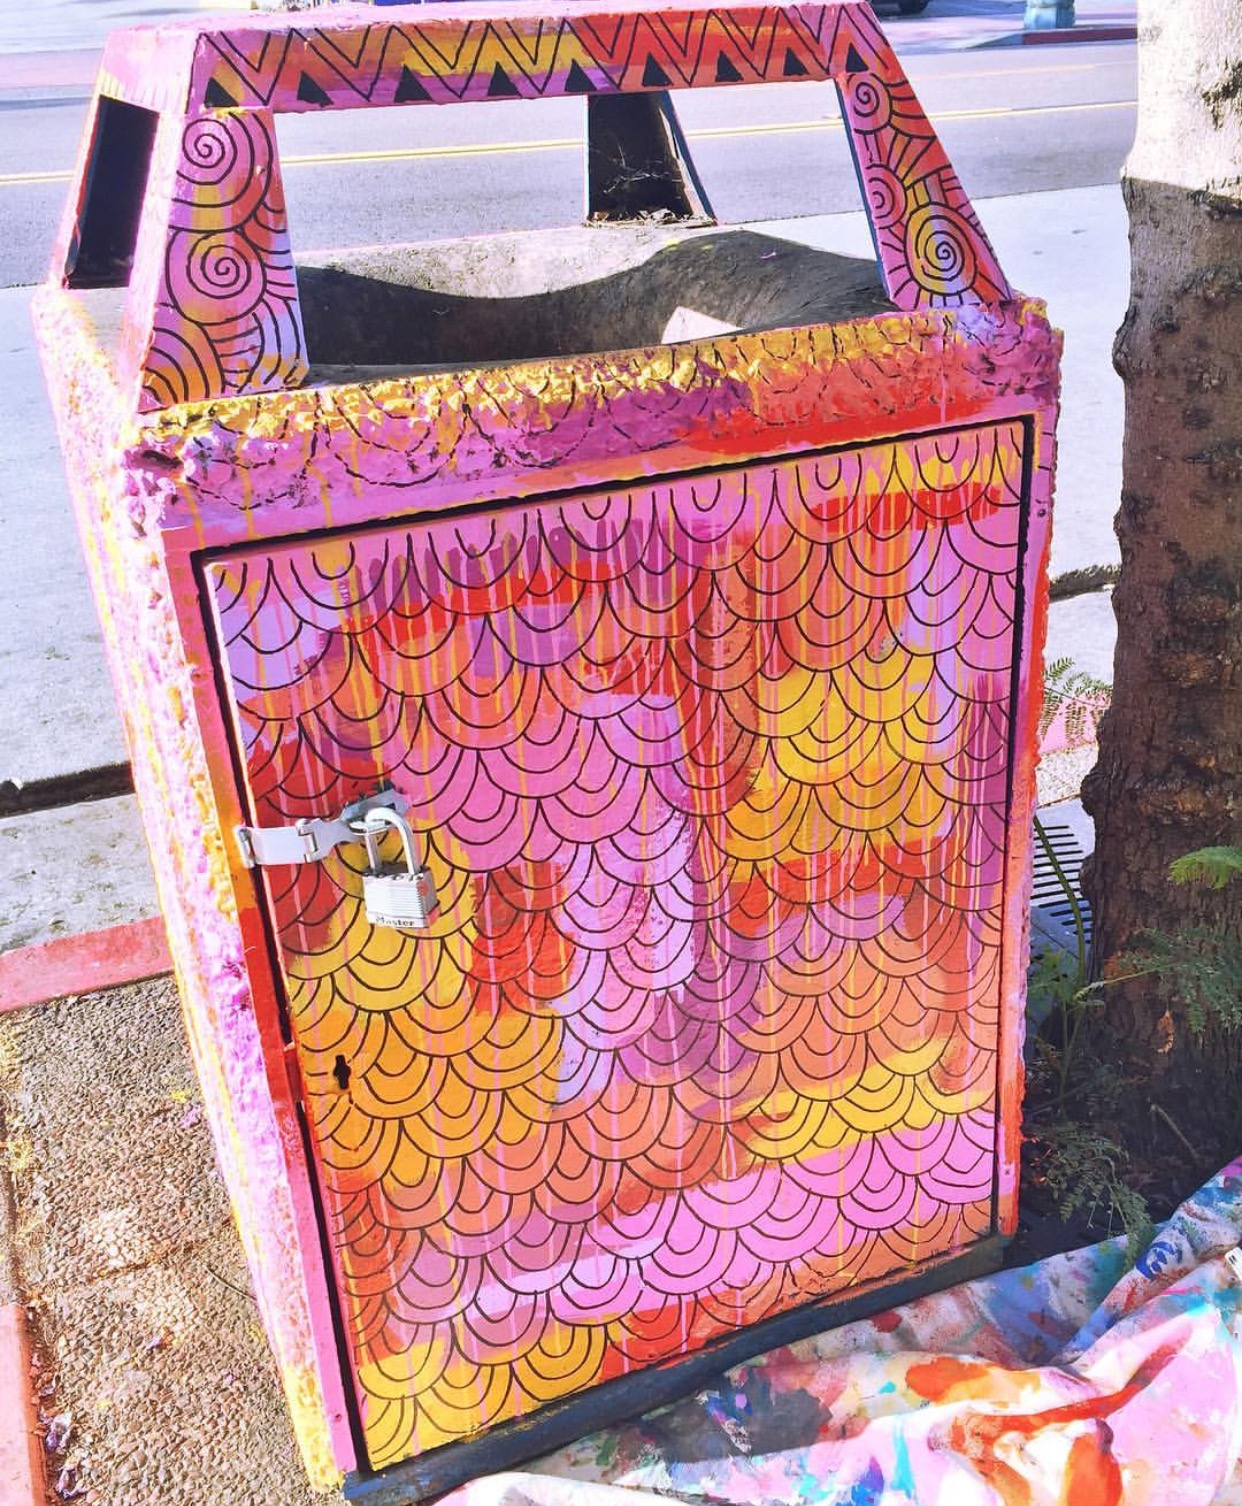 Trashcan for the Visual Public Art Project, City Heights, San Diego, 2015